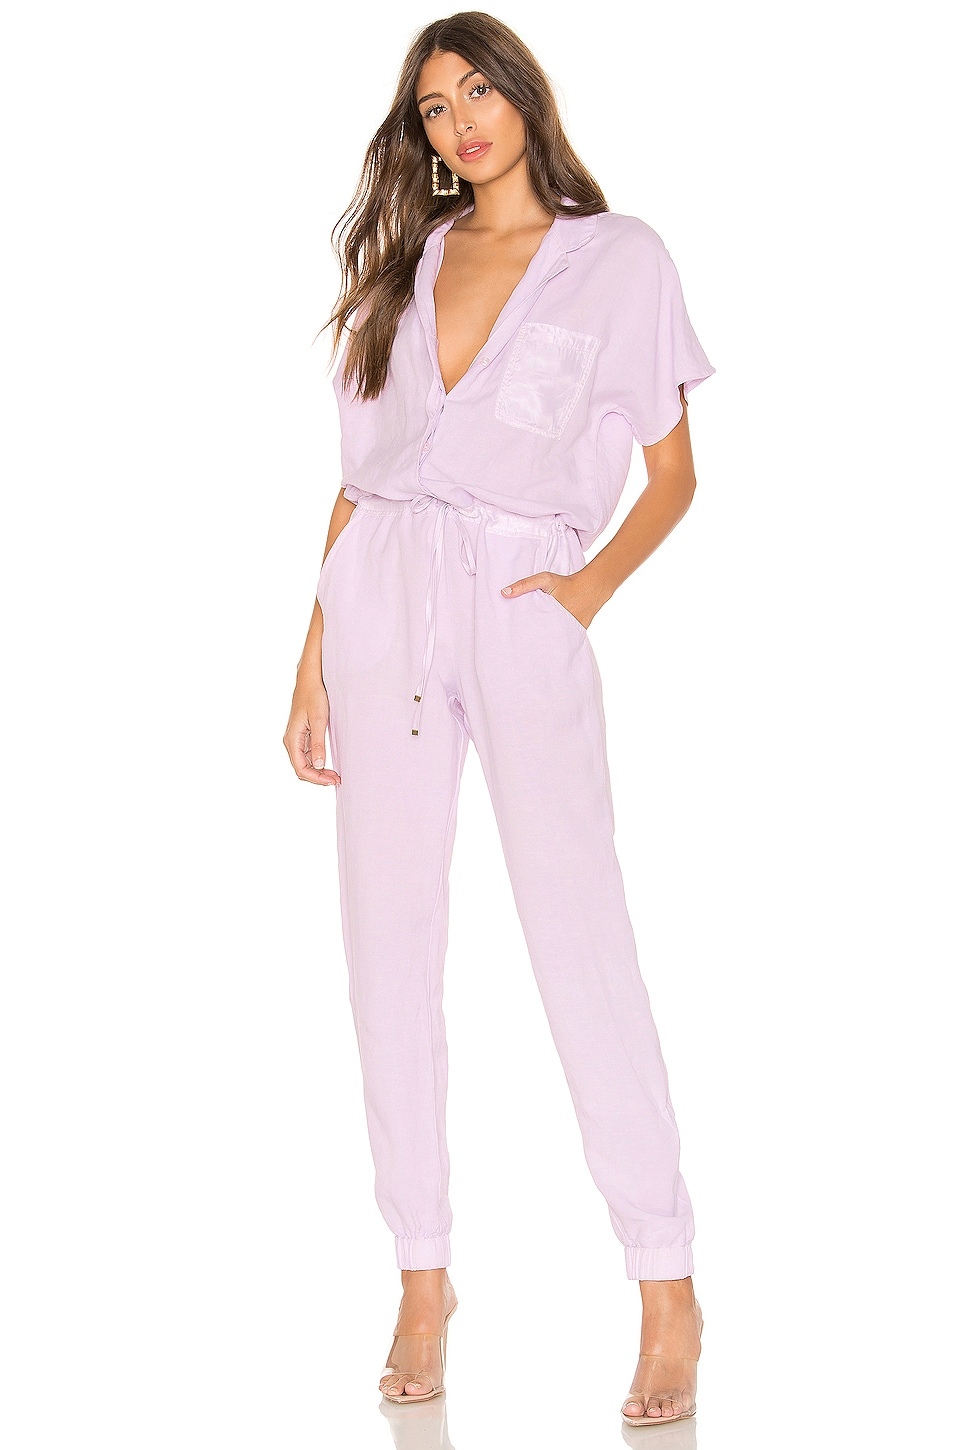 YFB CLOTHING X REVOLVE Adrienne Jumpsuit in Lilac